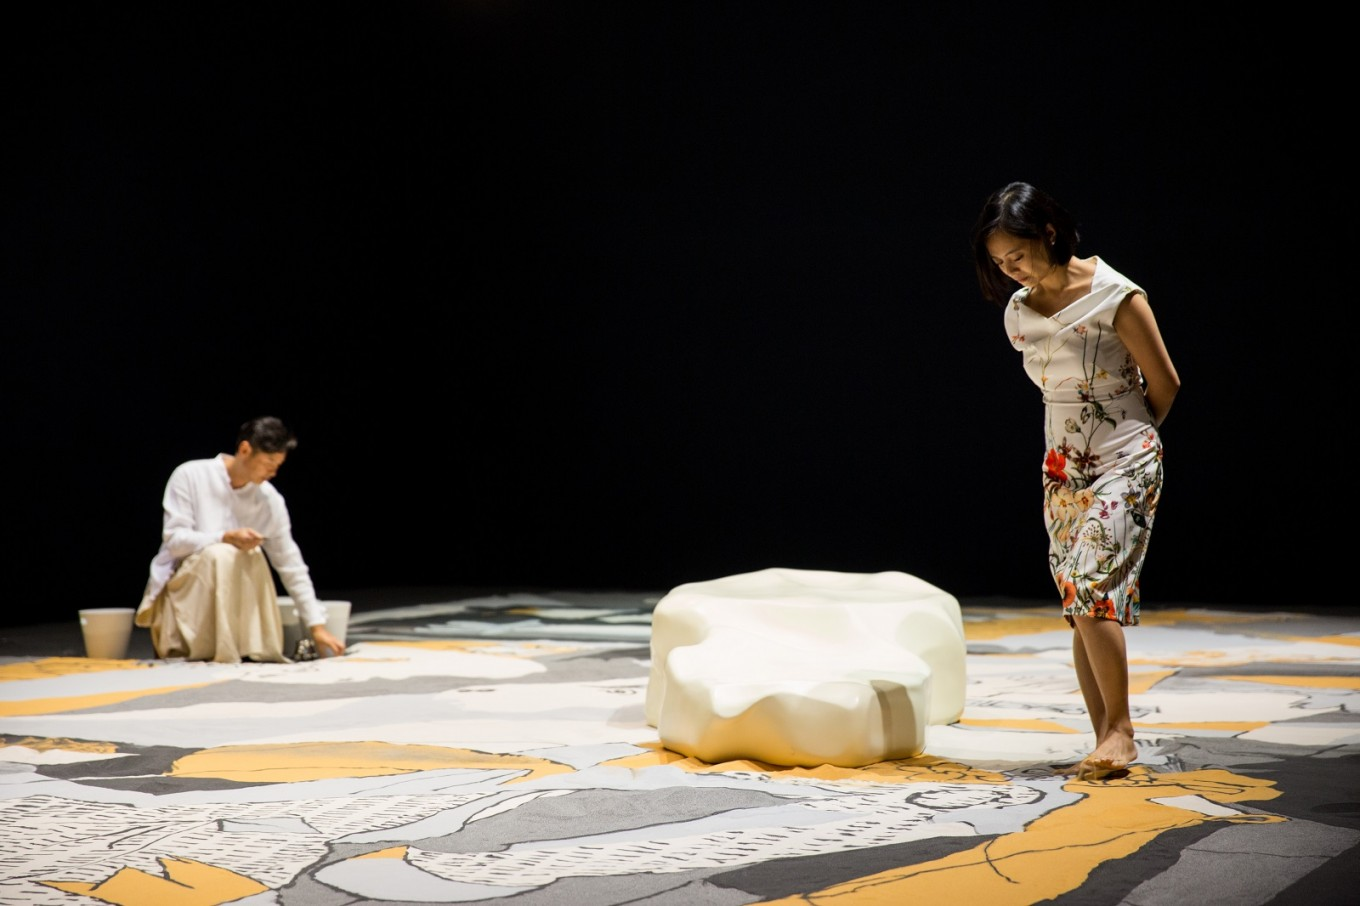 Museum Macan to mark first anniversary with conceptual performances, interactive exhibitions